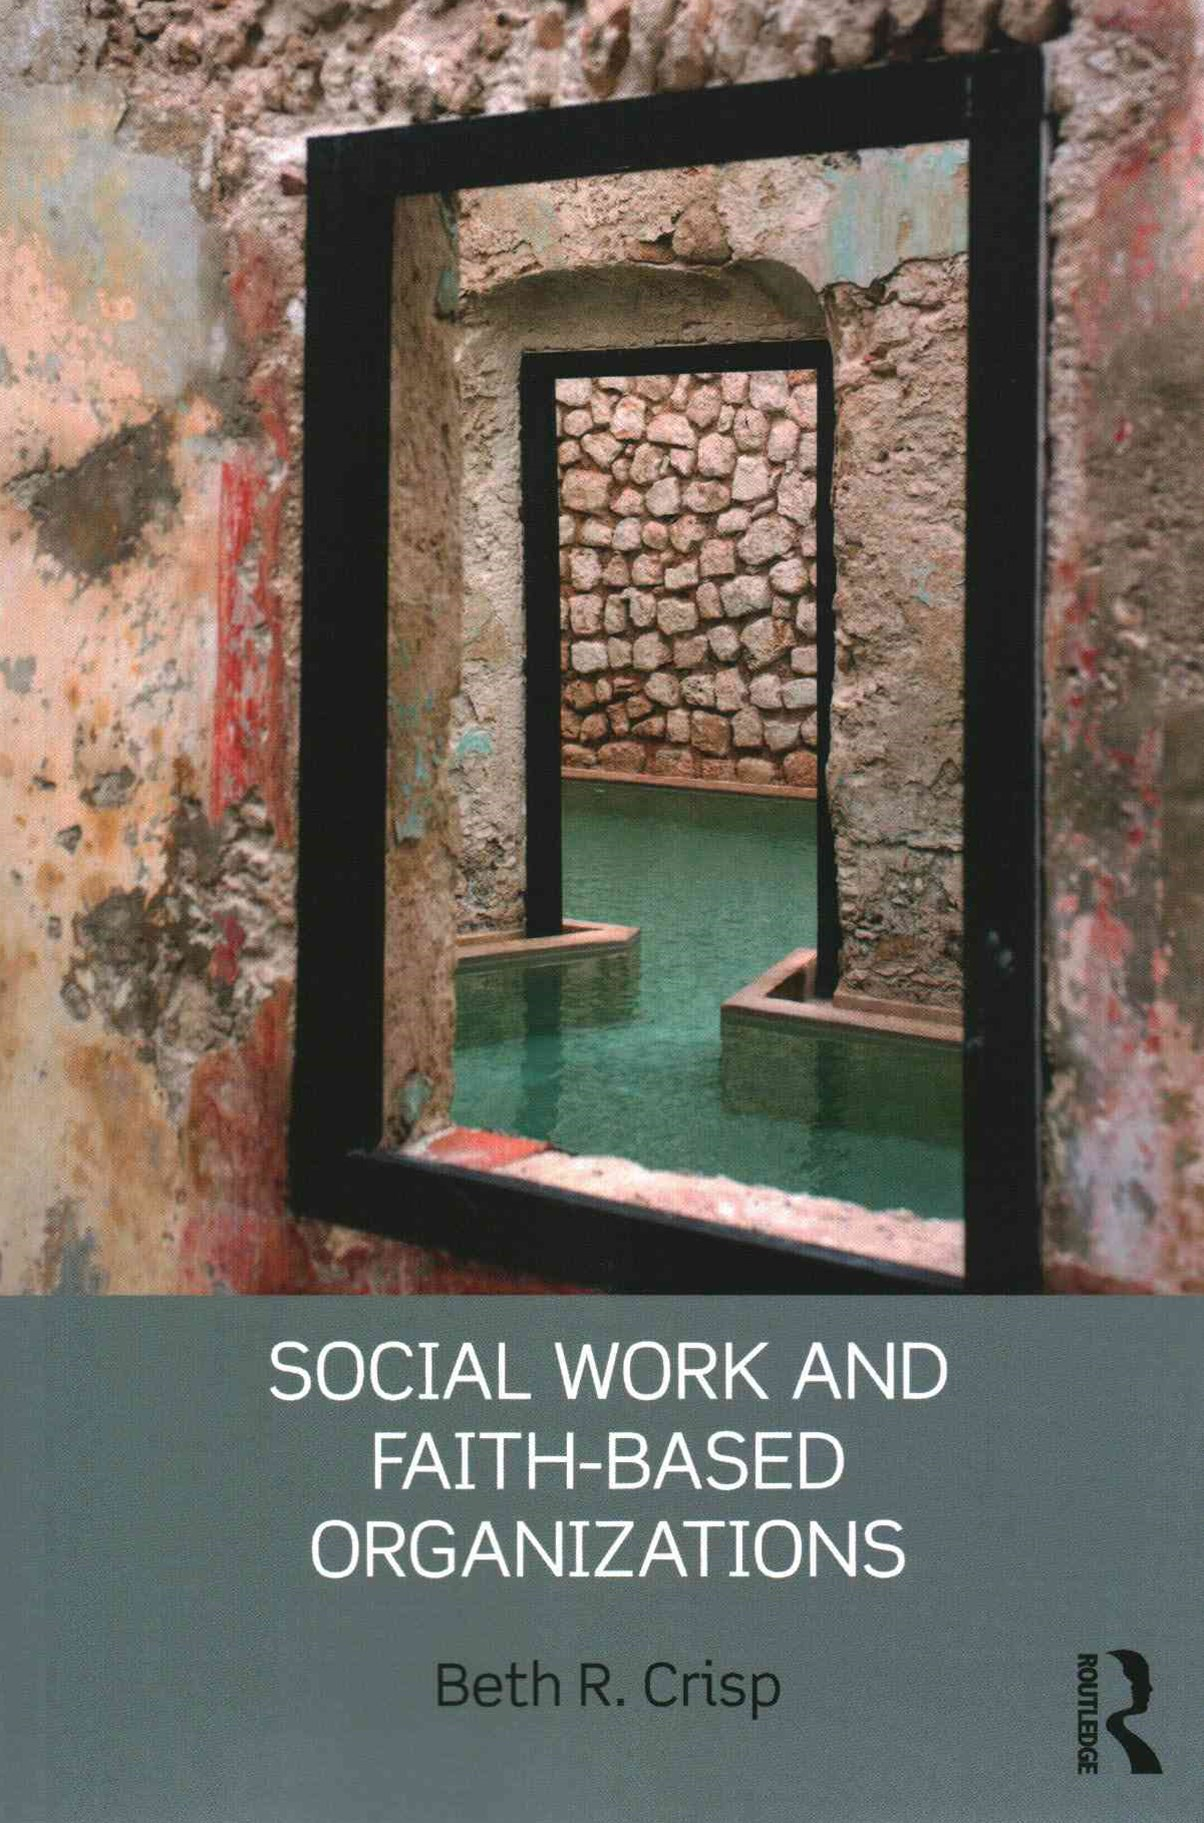 Social Work and Faith-Based Organizations